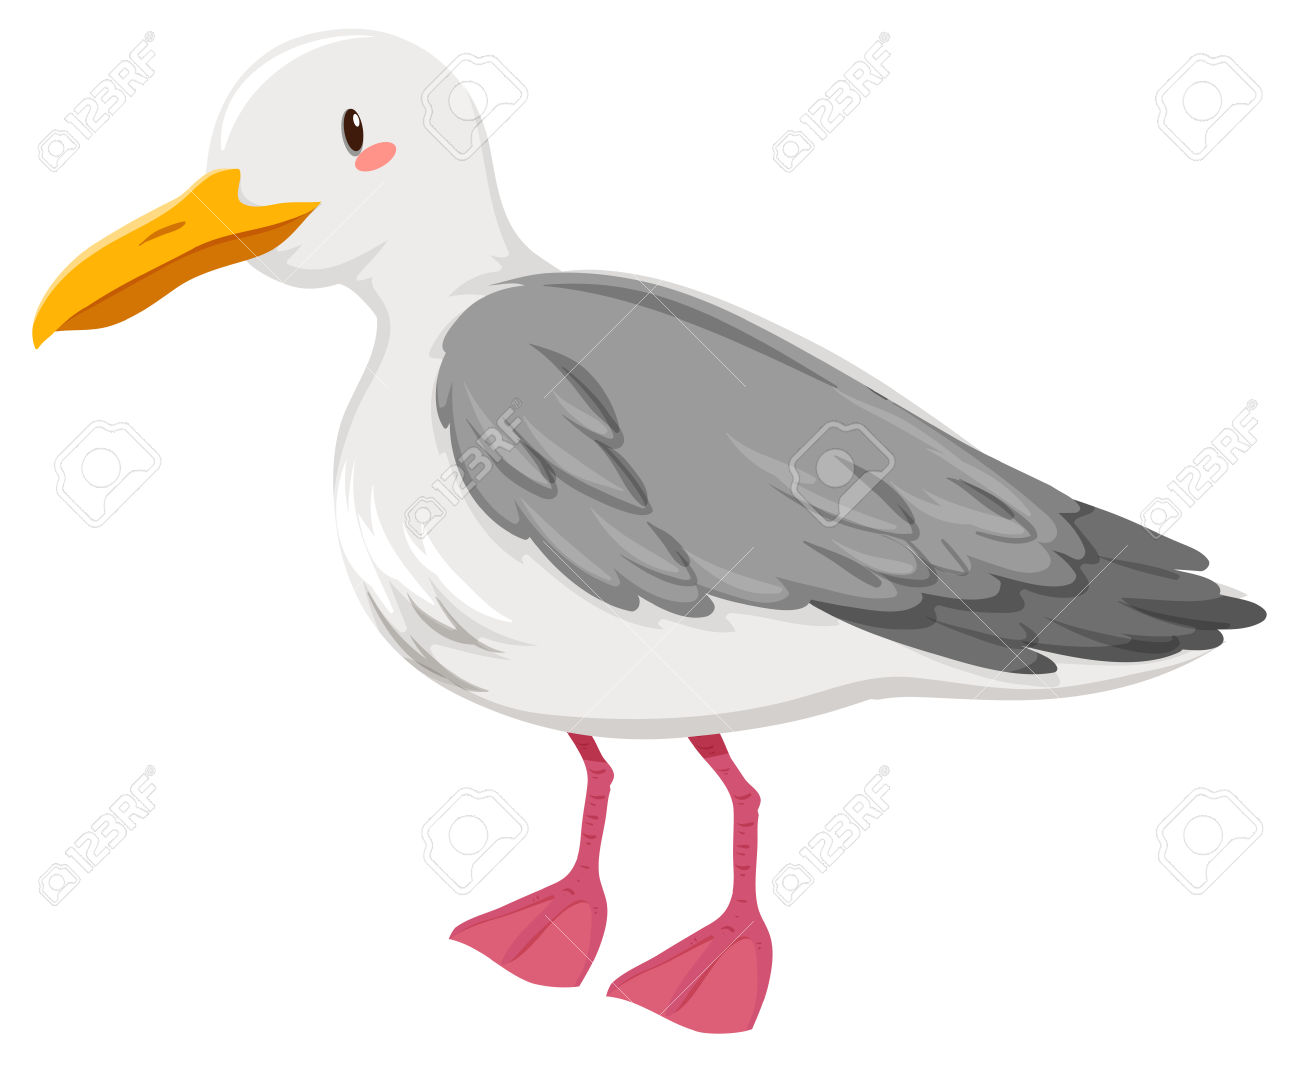 Seagull With Gray And White Feather Illustration Royalty Free.